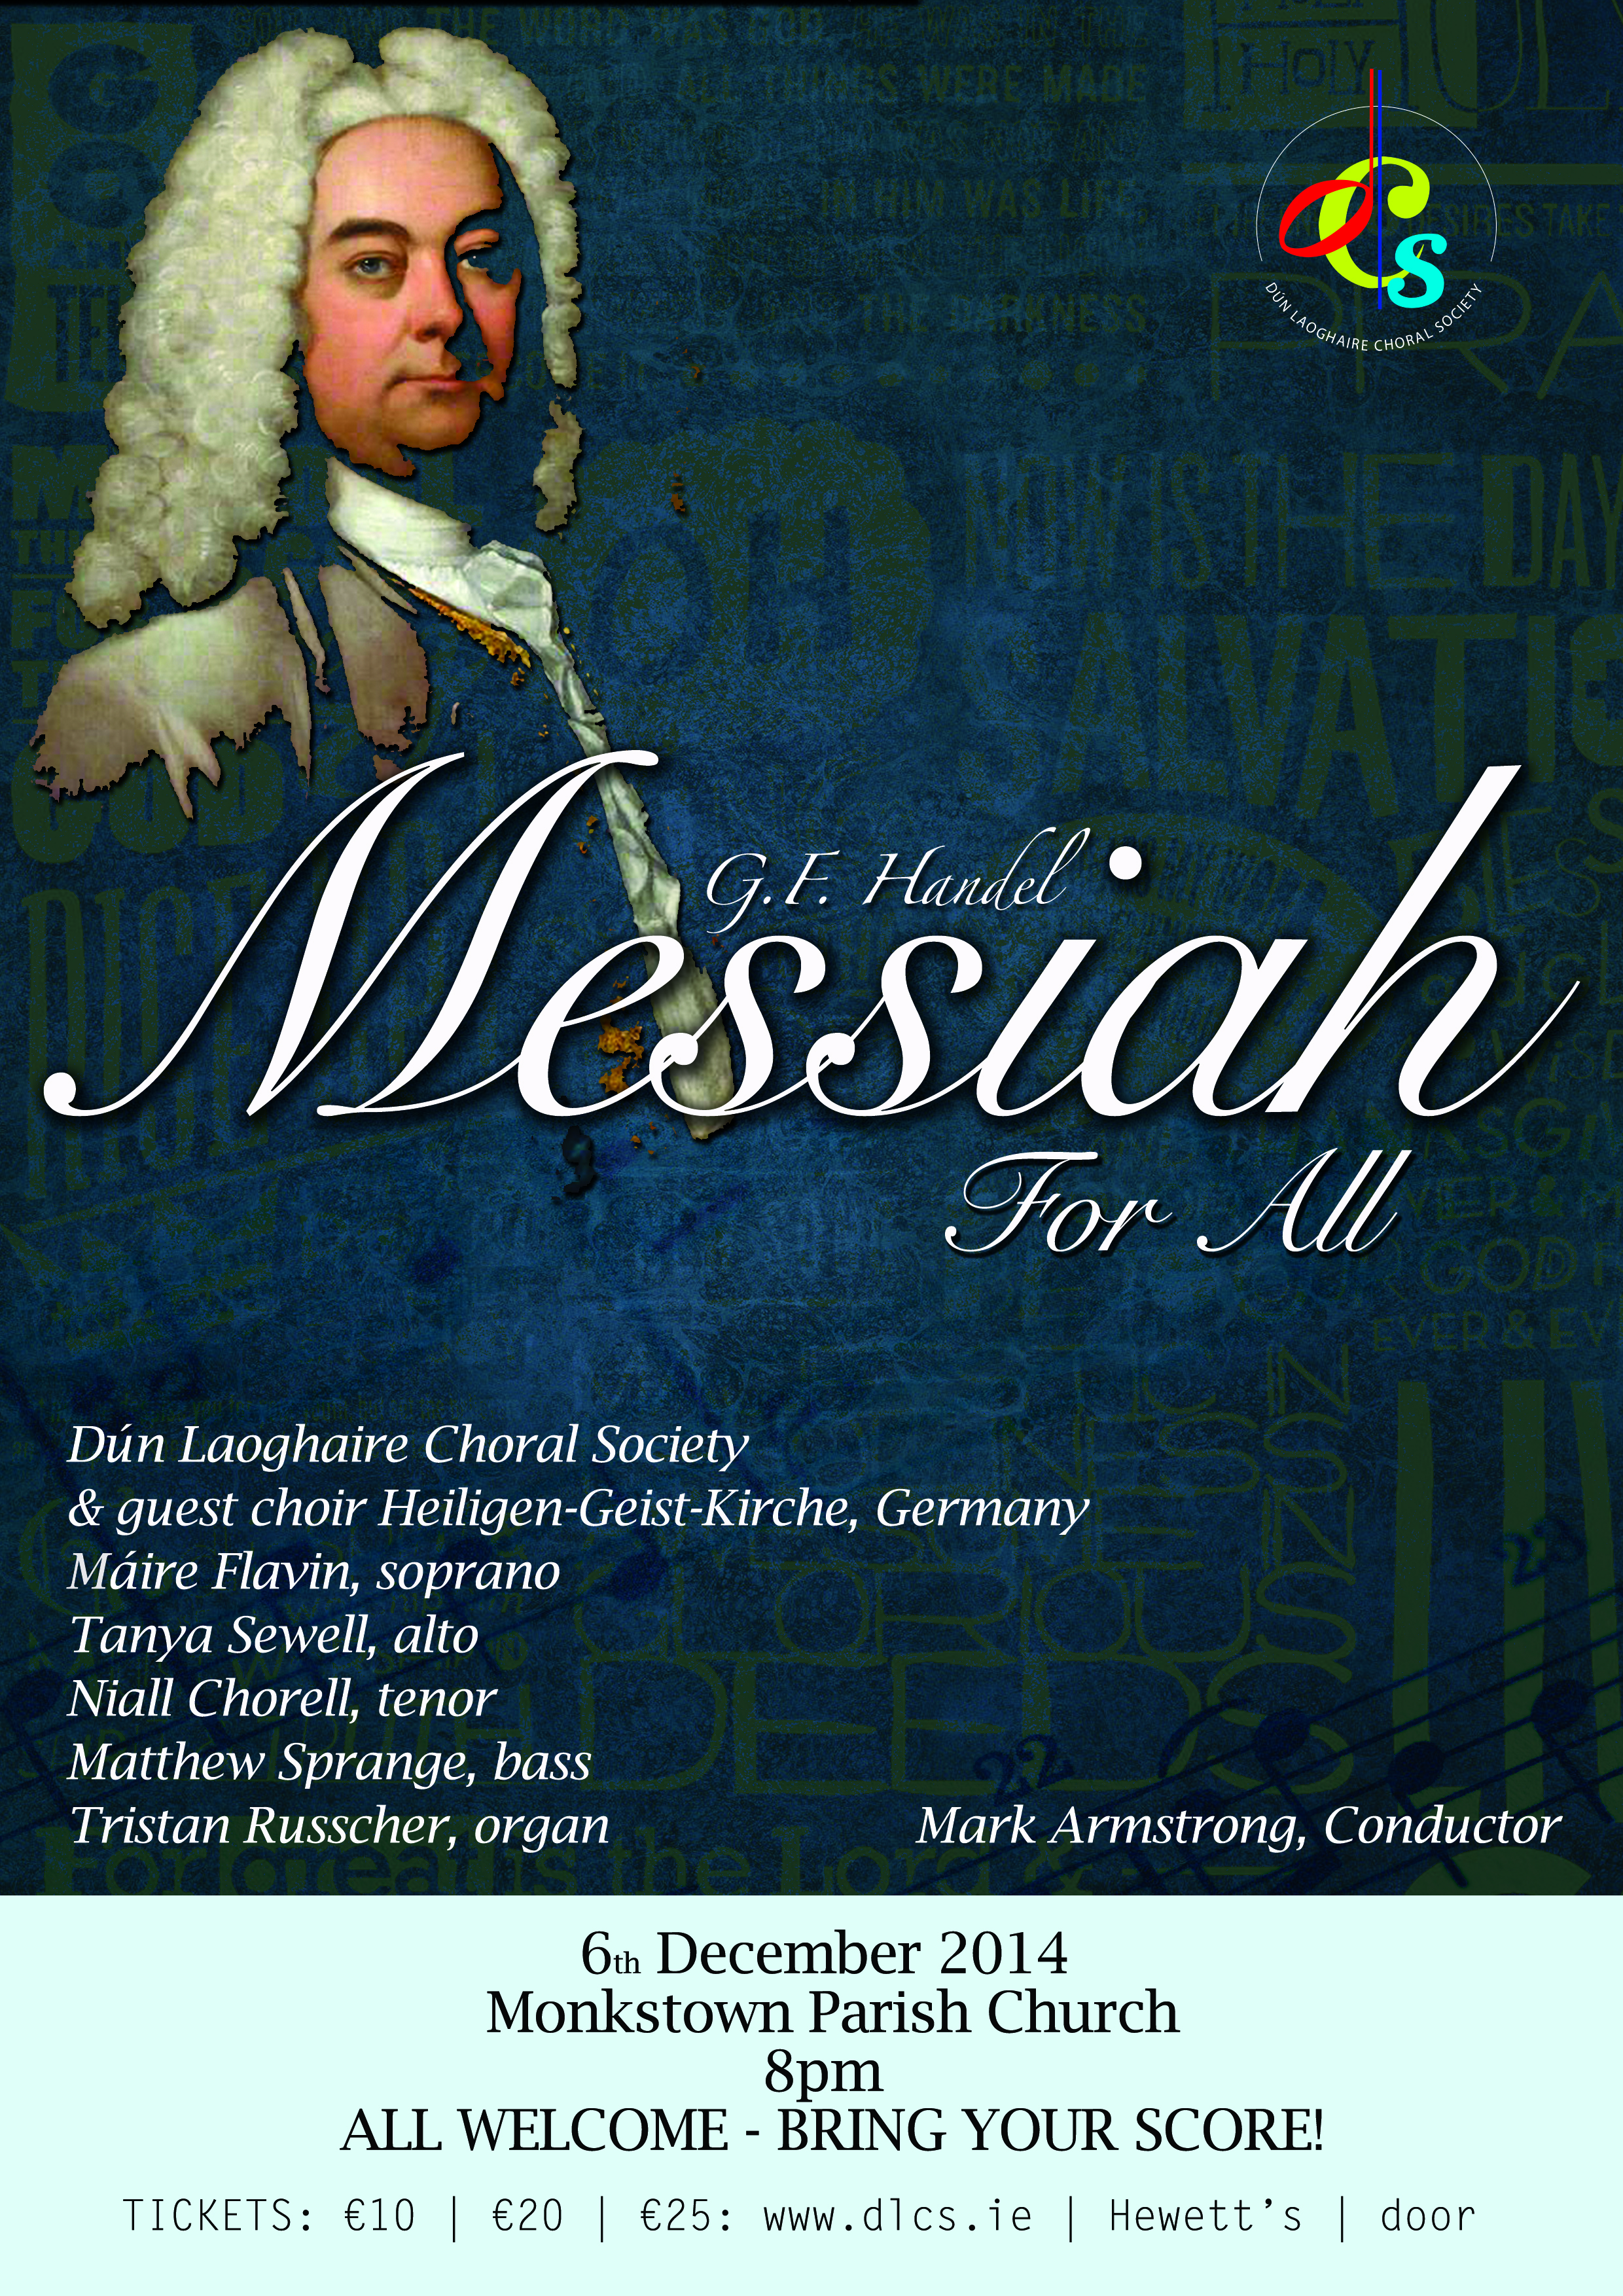 Messiah for All, 6th December 2014